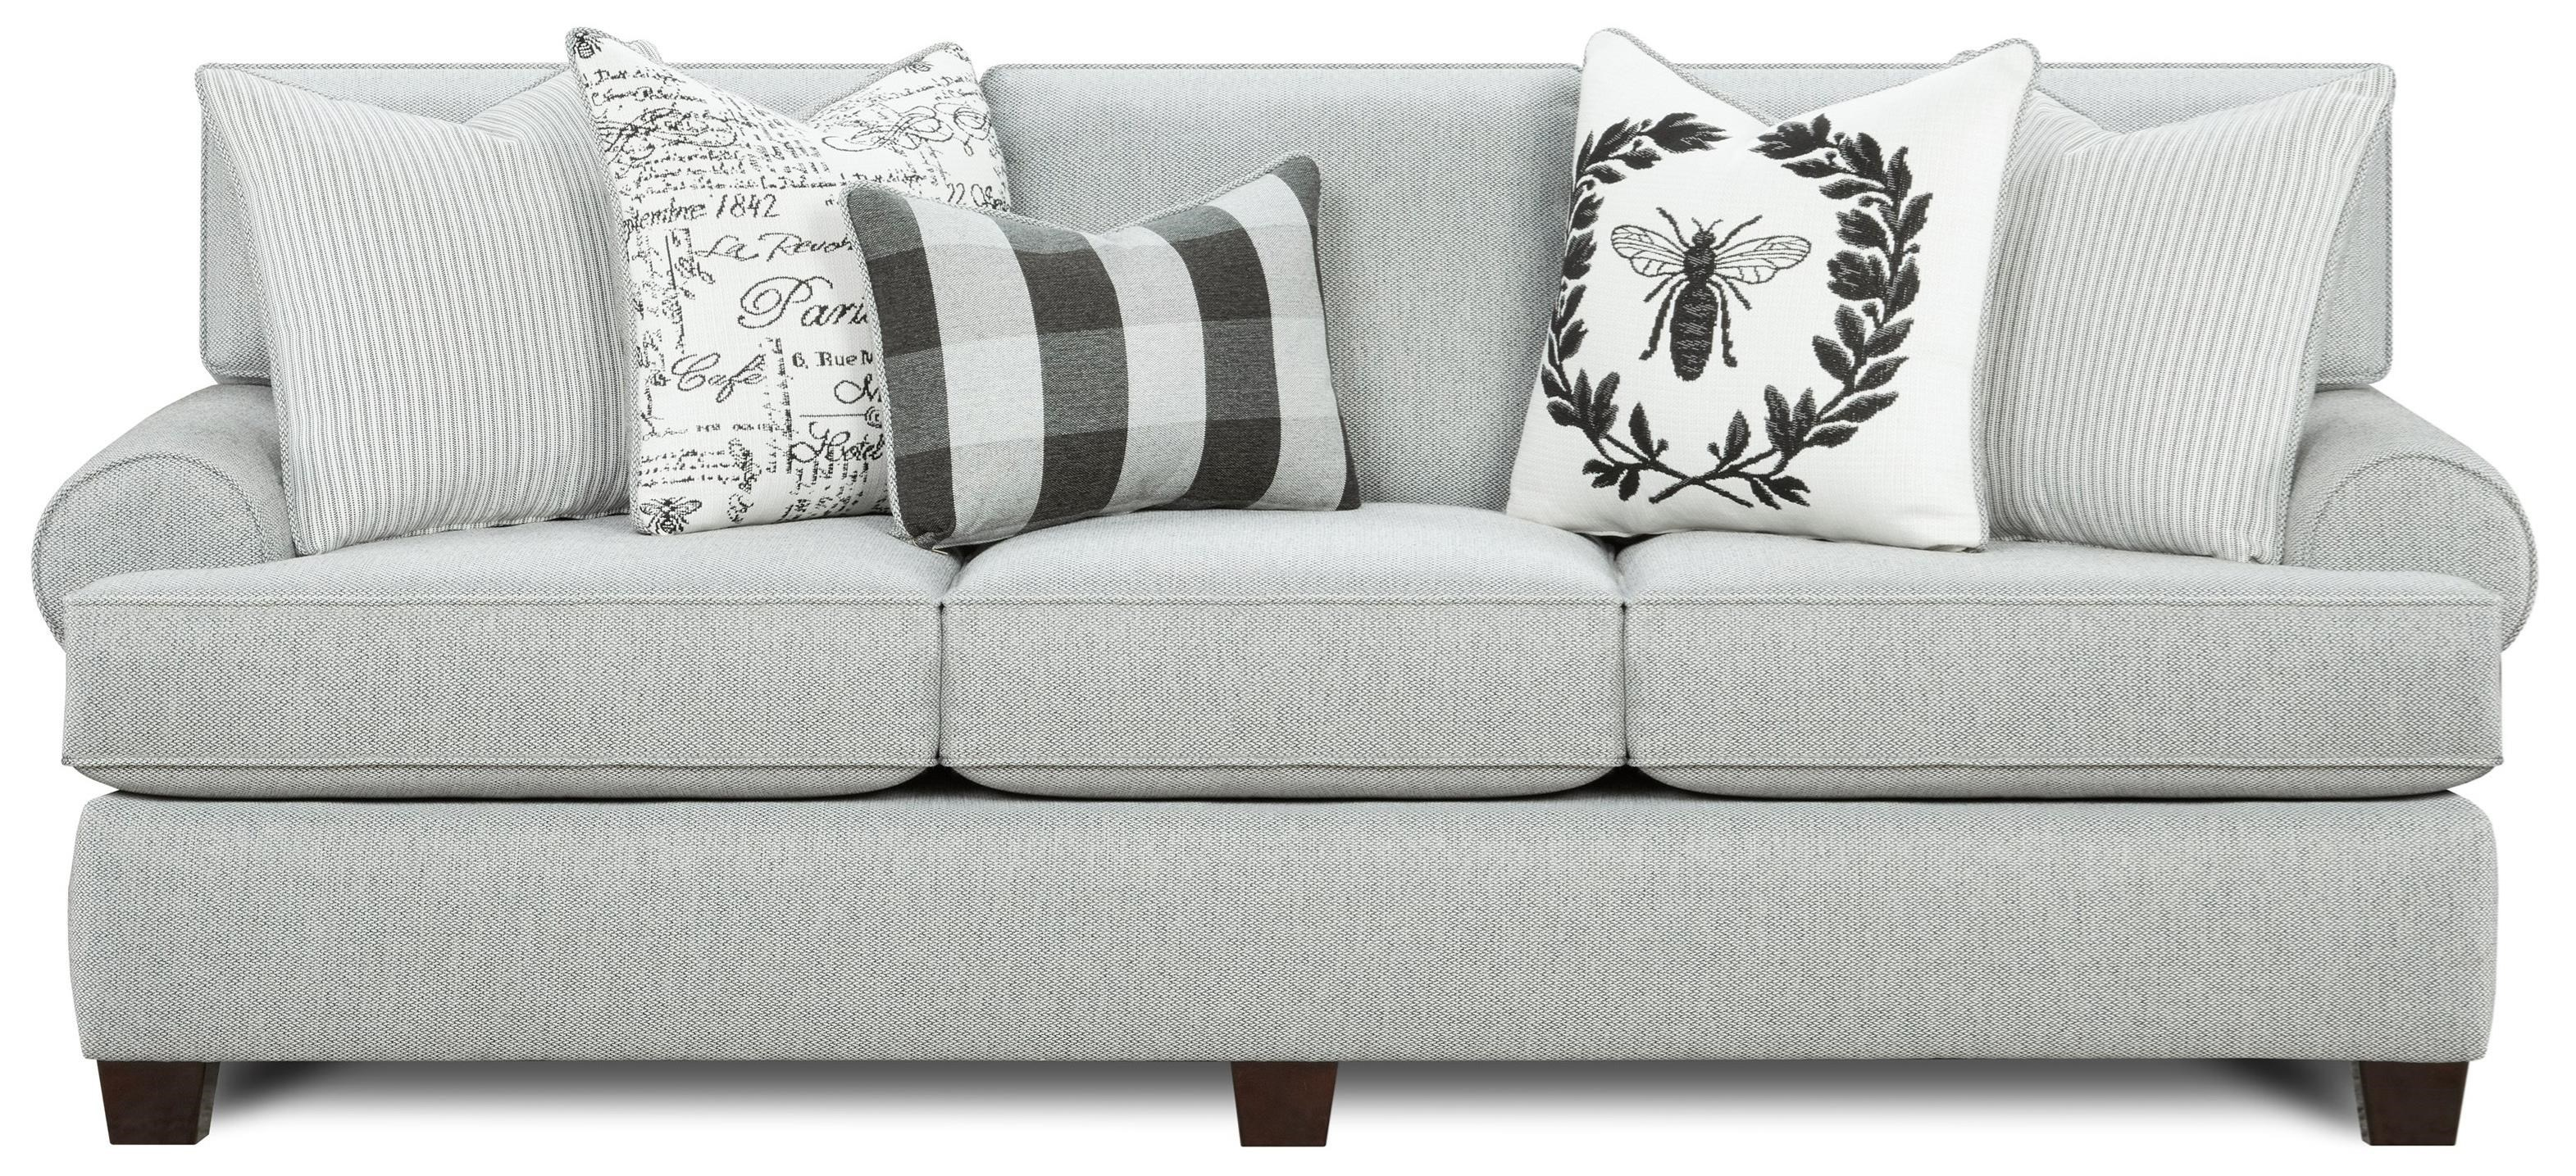 39-00 Sleeper Sofa by Powell's V.I.P. at Powell's Furniture and Mattress